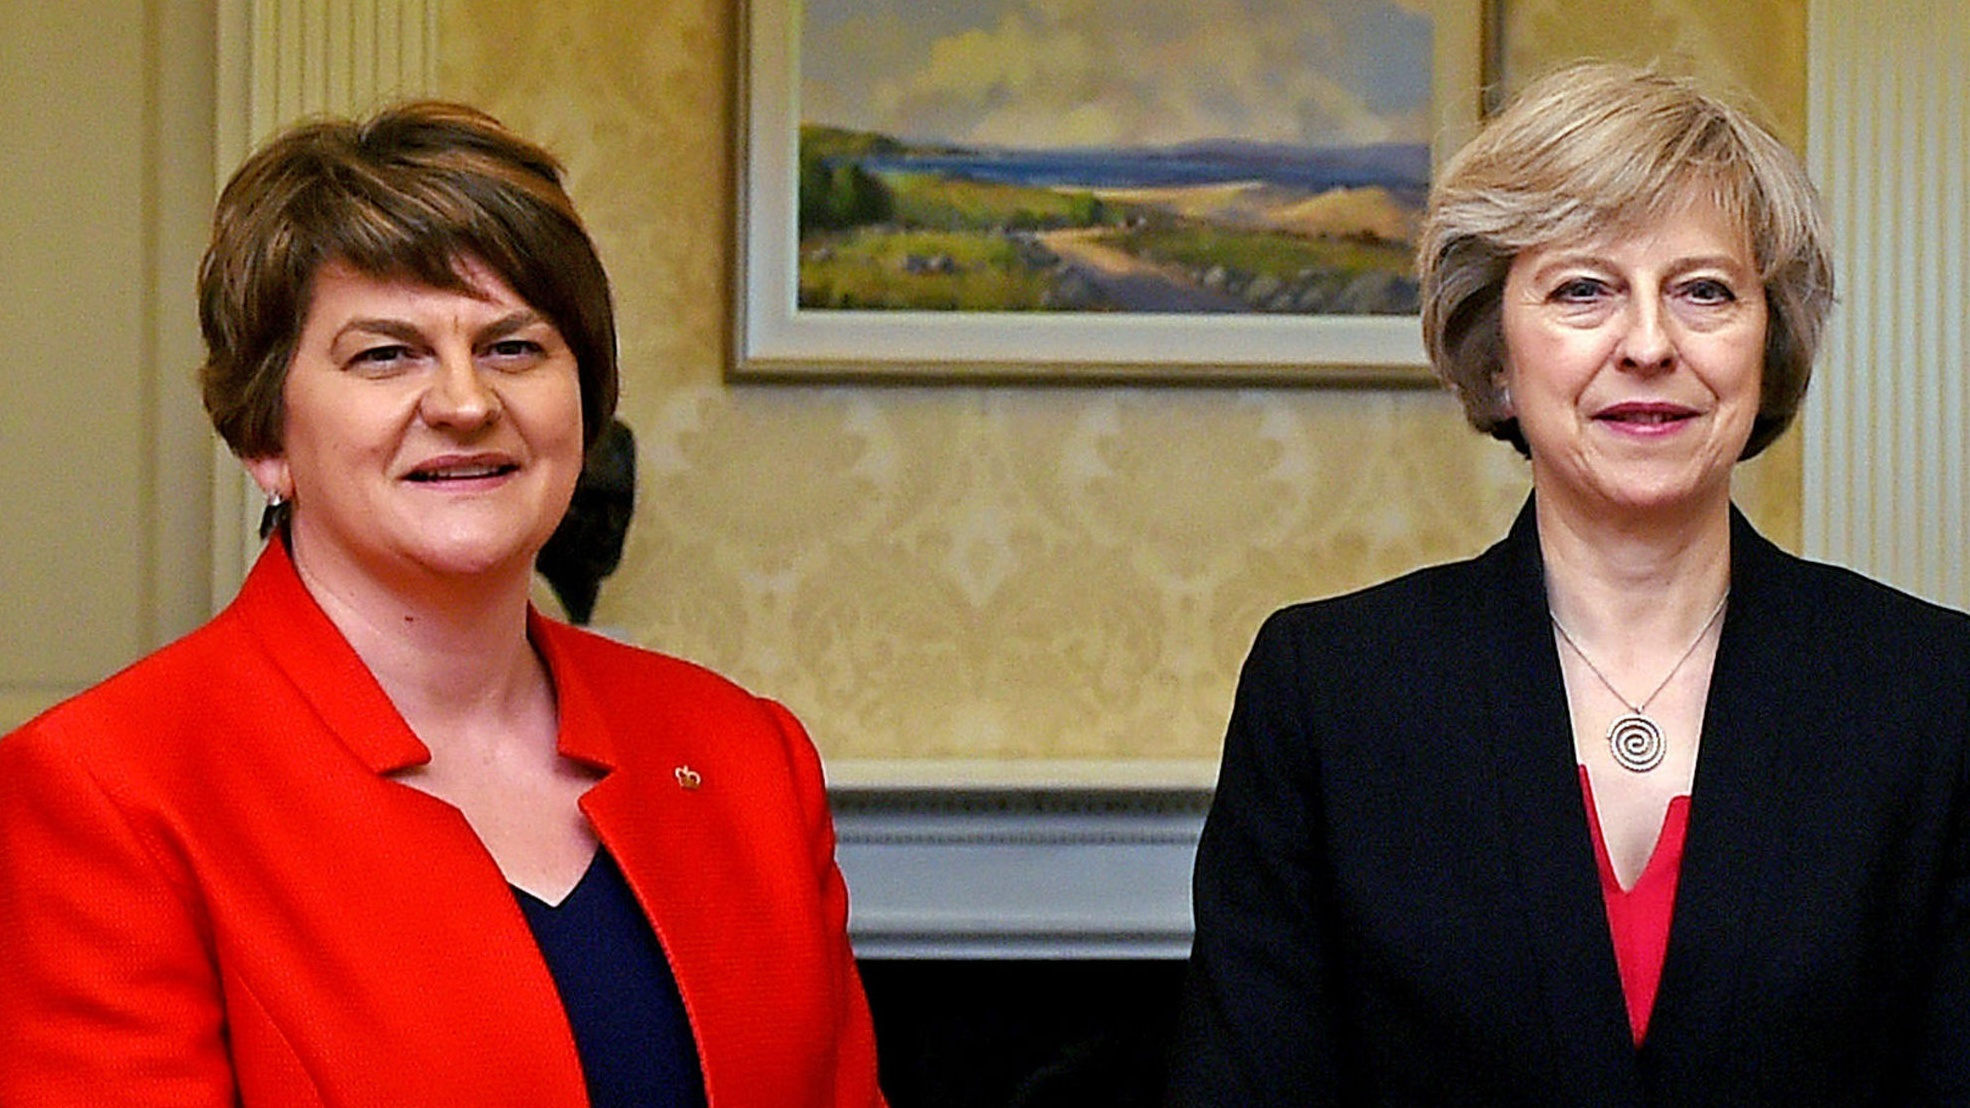 Talks between UK PM May's Conservatives and N.Ireland's DUP restart